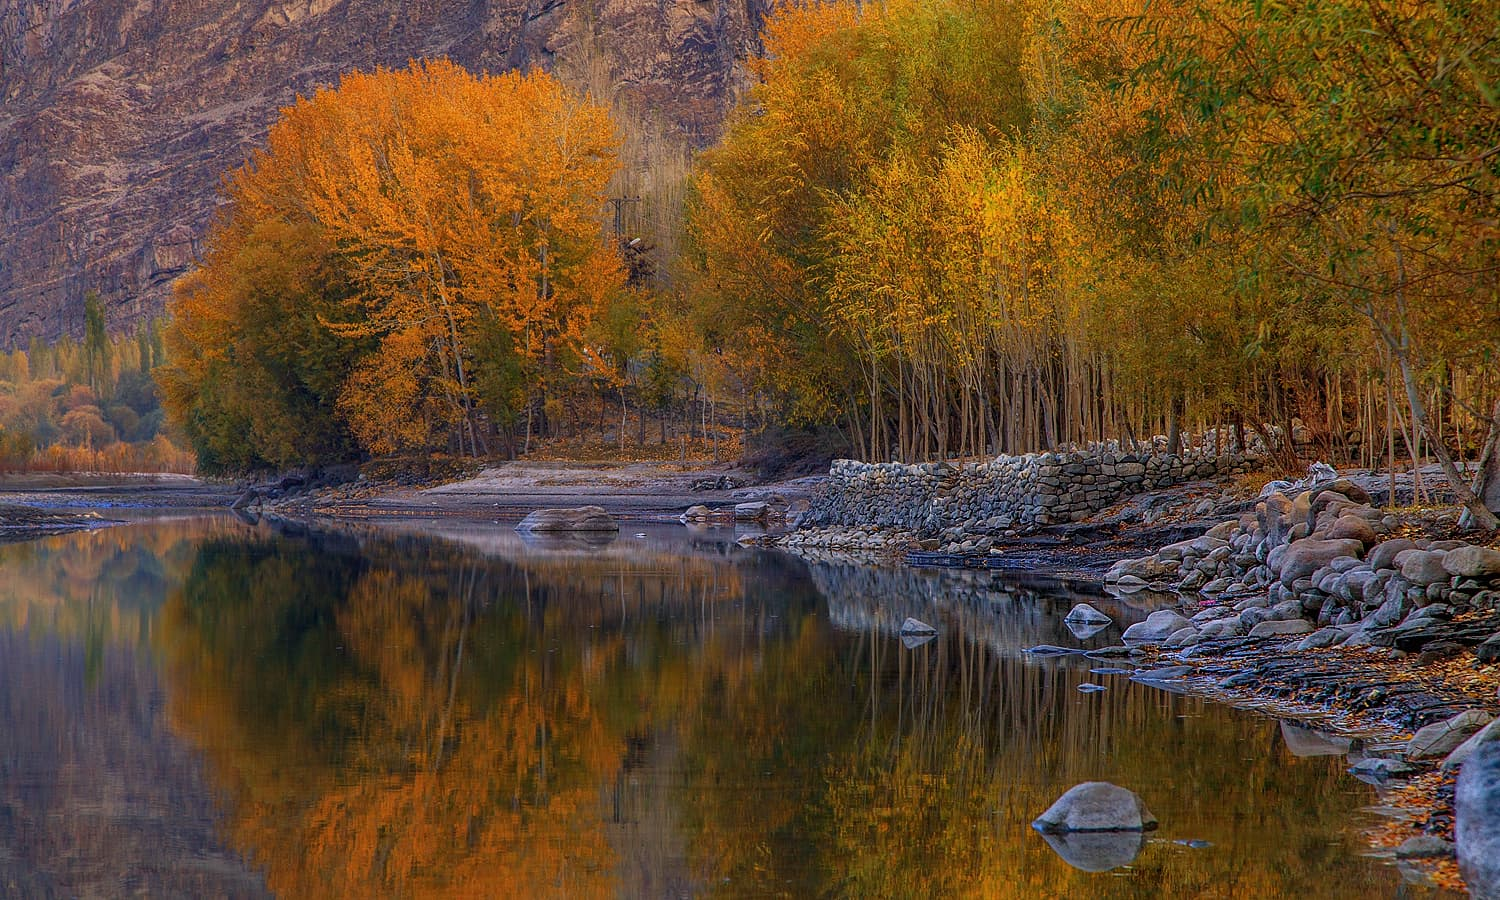 Autumn In Khaplu. — S.M.Bukhari